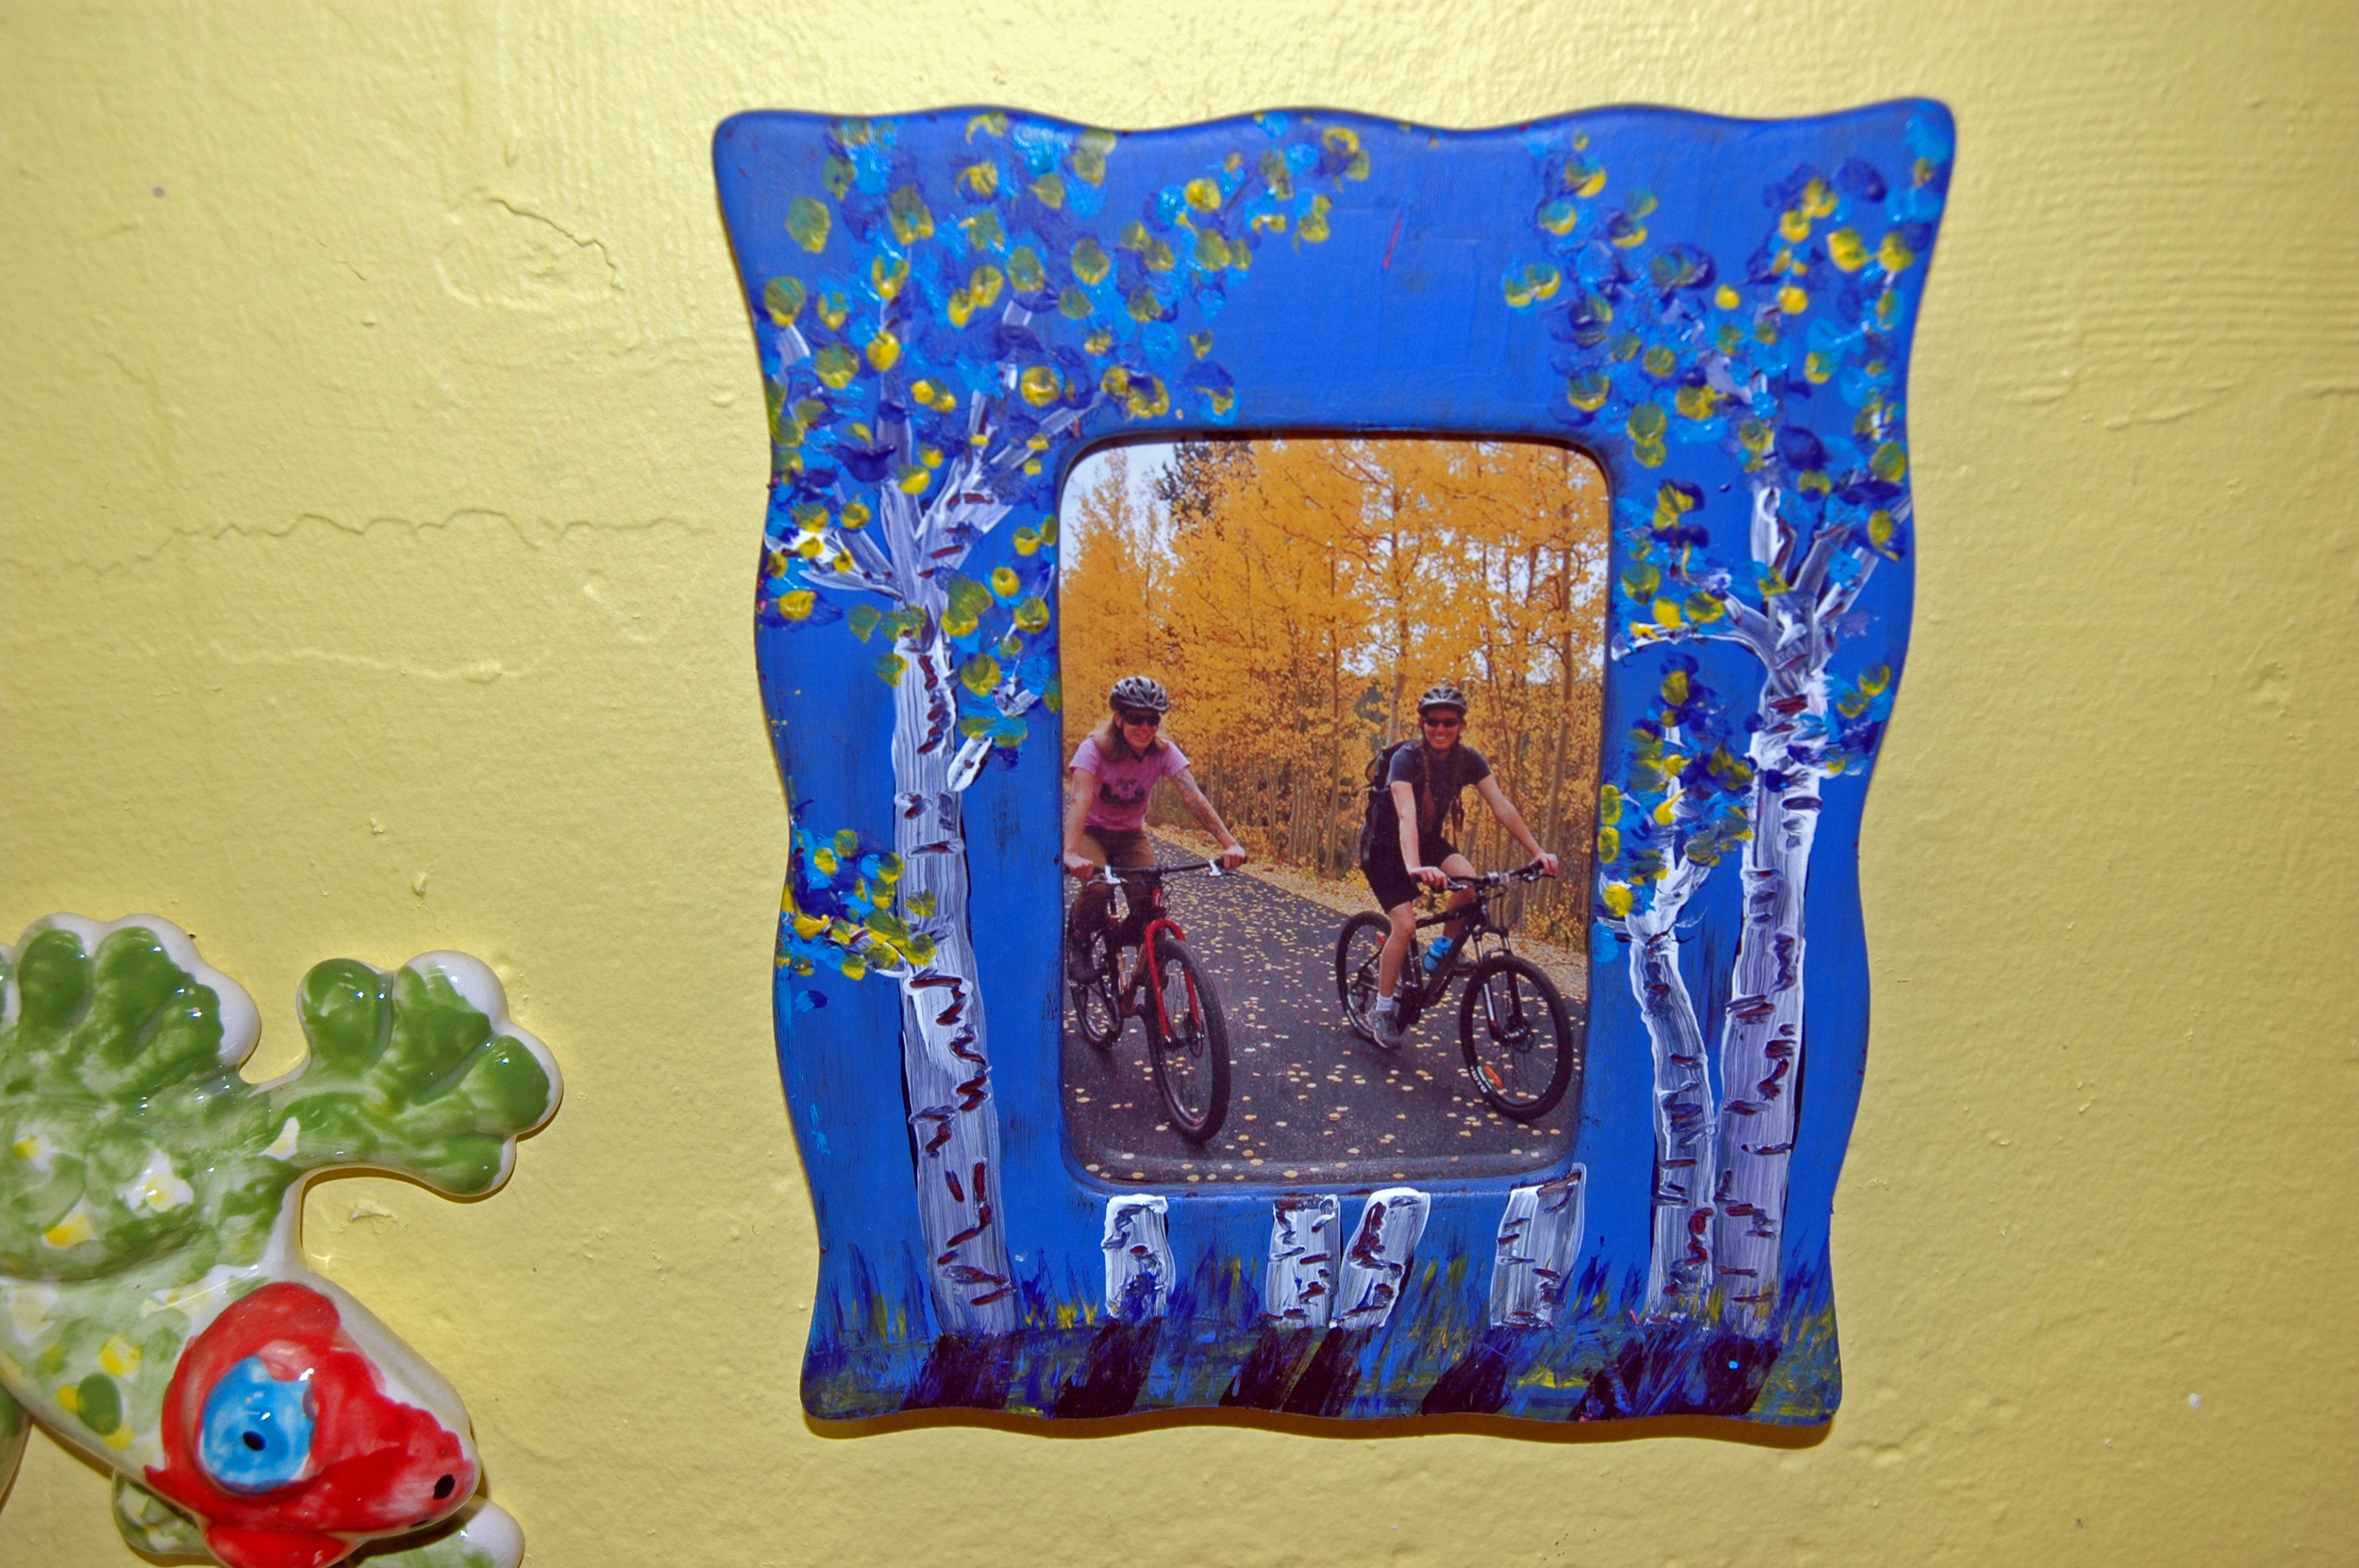 This picture frame was made with acrylic paint!